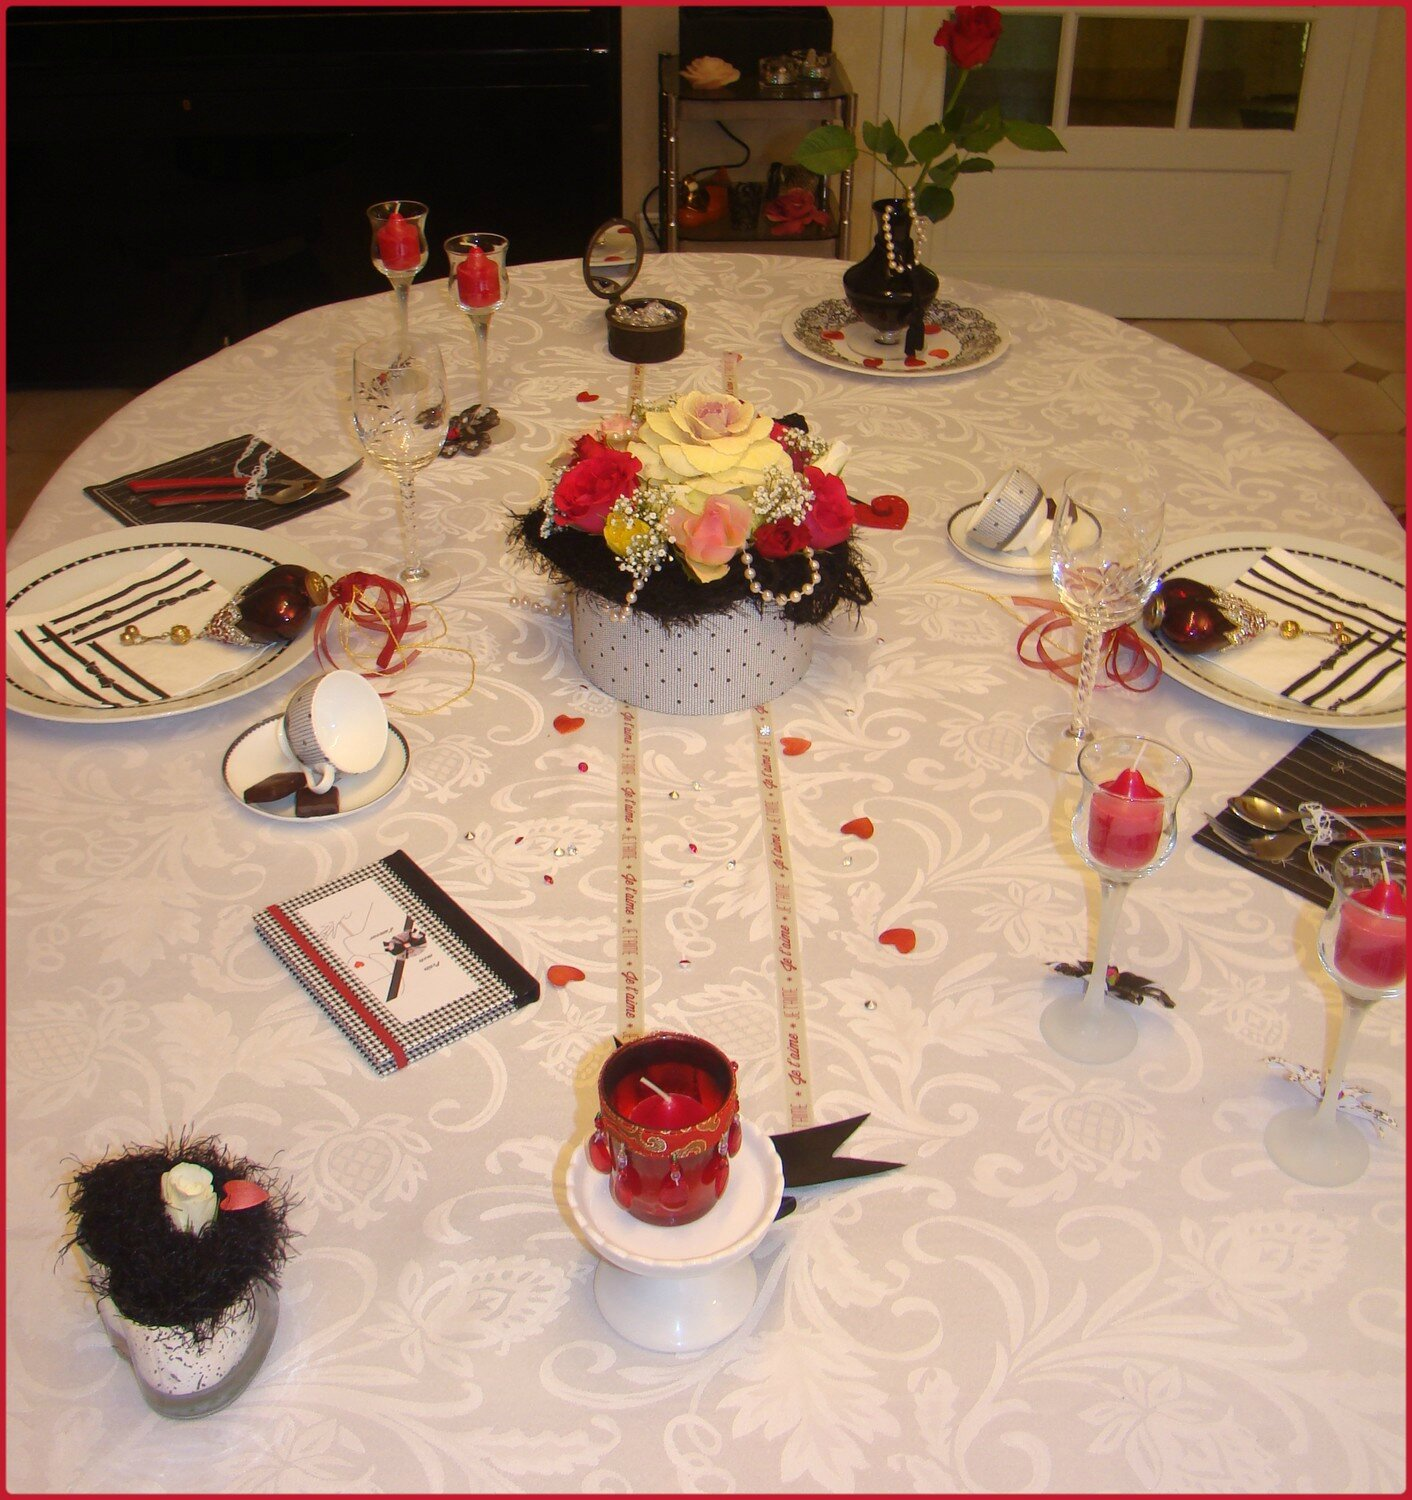 Table Saint Valentin dedans table saint-valentin 2015 - miss gleni and co